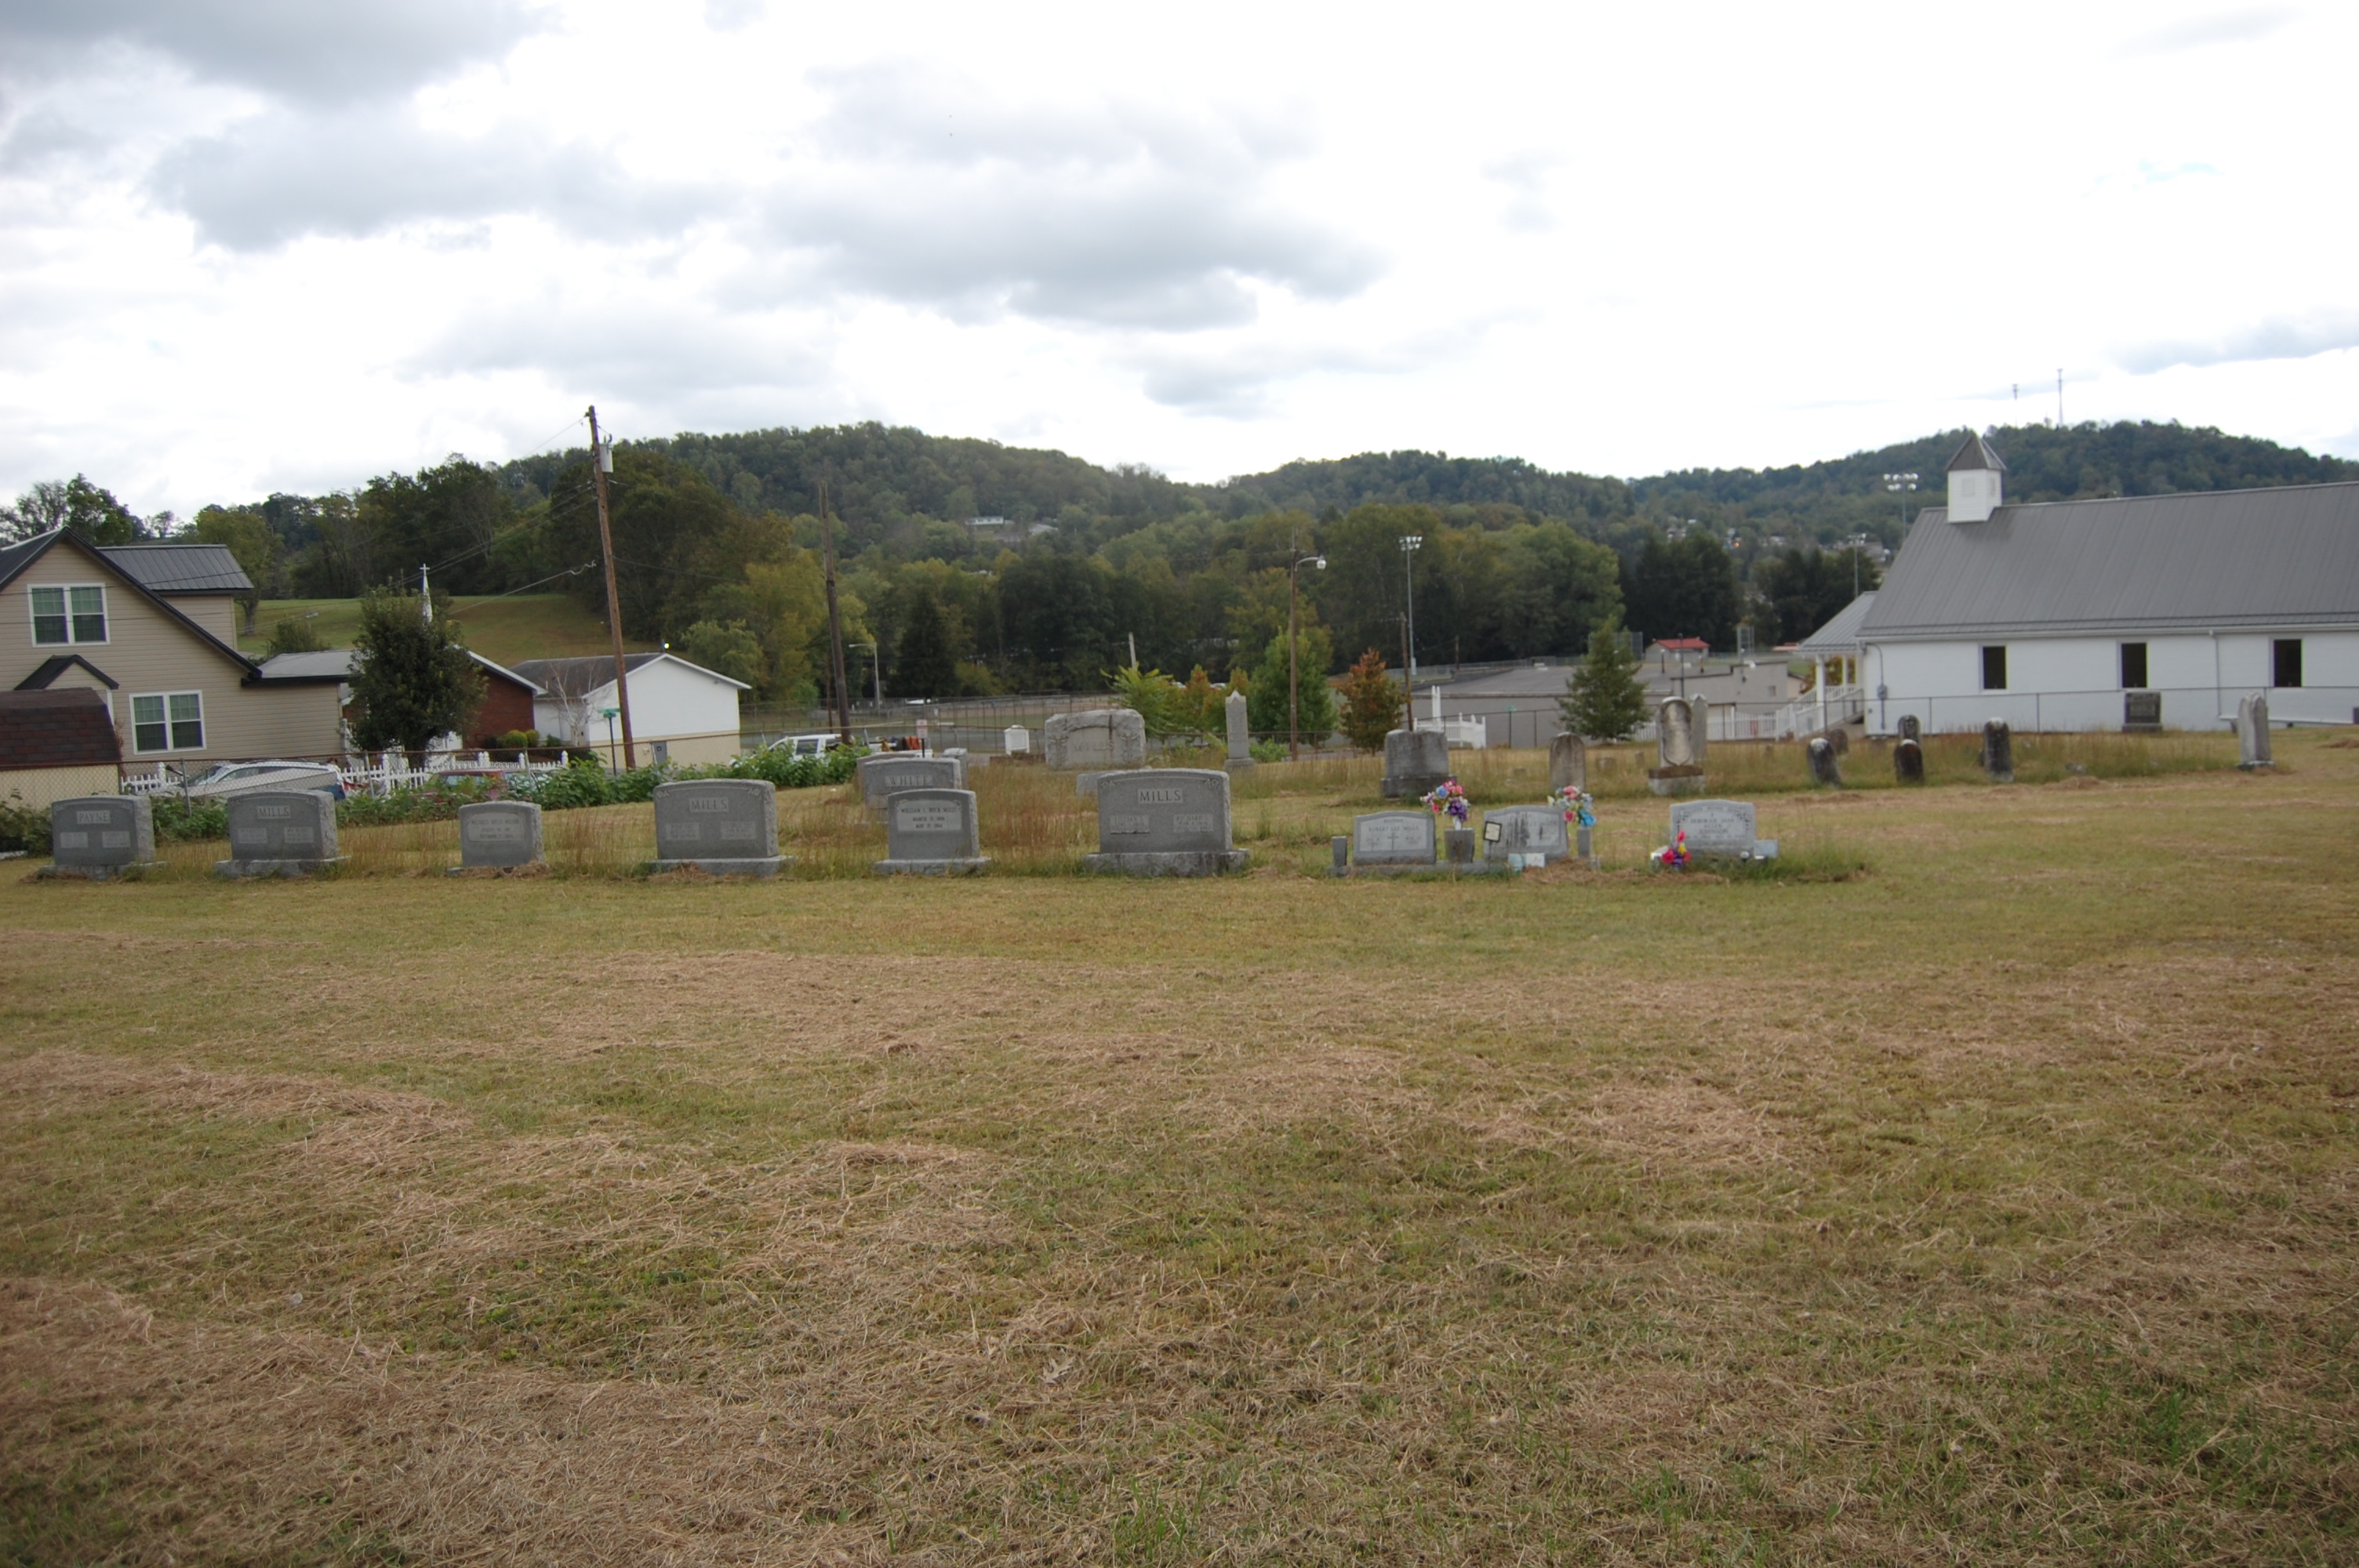 This is the Nutter Fort Cemetary located behind the City Building.